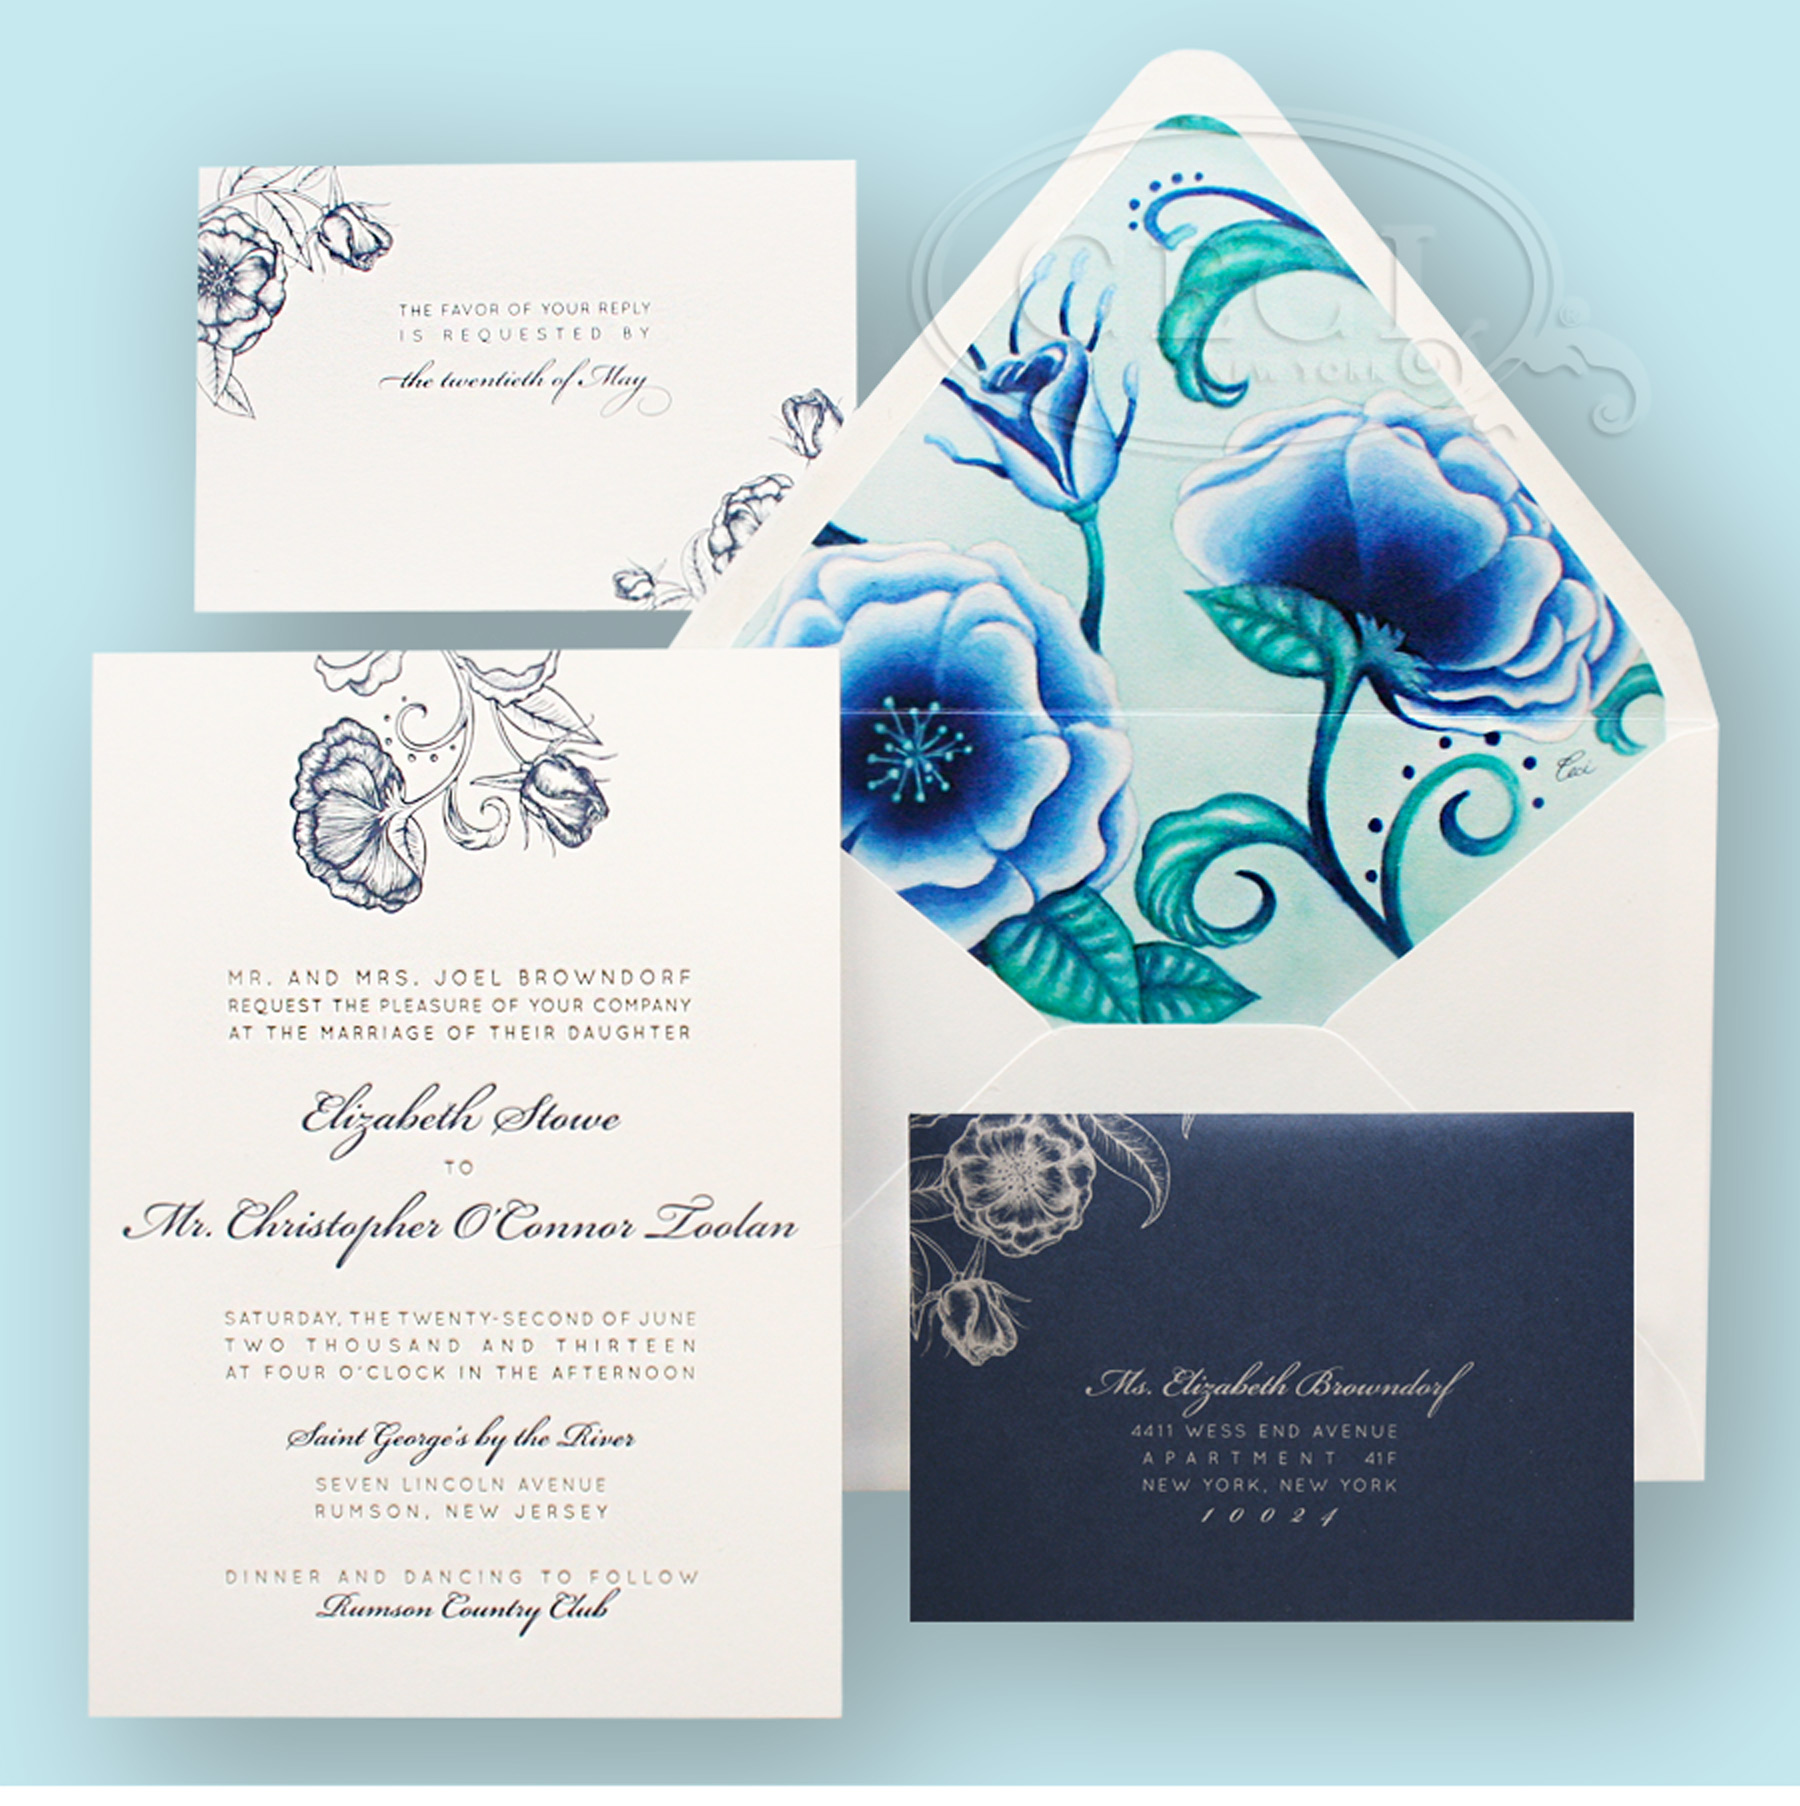 Luxury Wedding Invitations by Ceci New York - Our Muse - Romantic Traditional Wedding - Be inspired by Liz & Chris' romantic, traditional New Jersey wedding - wedding, letterpress, floral, invitation, luxury invitation, blue, green, flowers, watercolor, ceci johnson, ceci new york